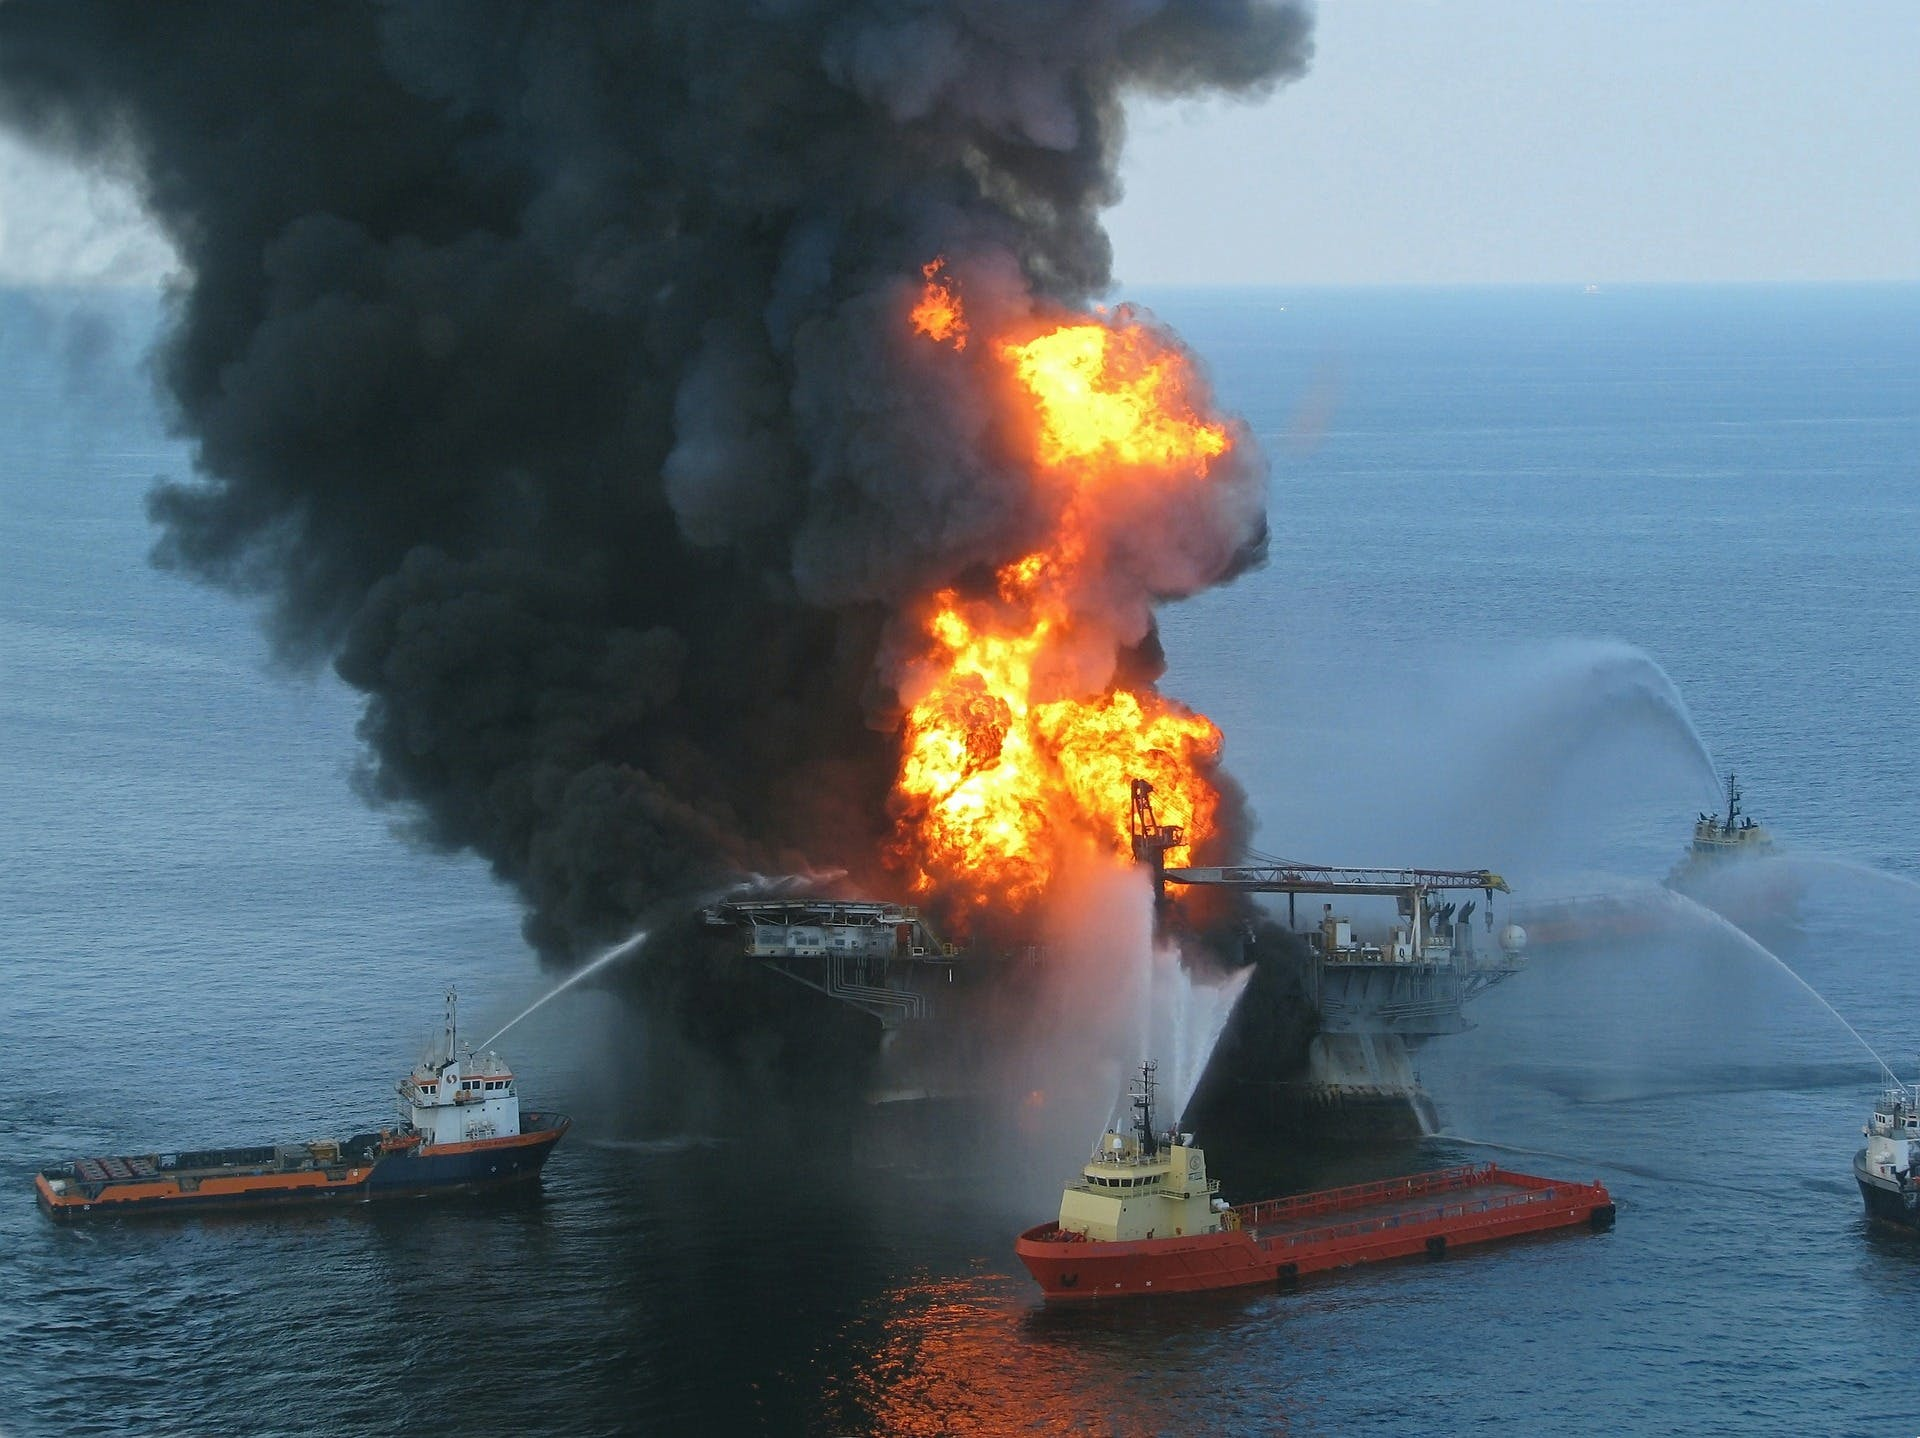 Oil rig explosion in the ocean